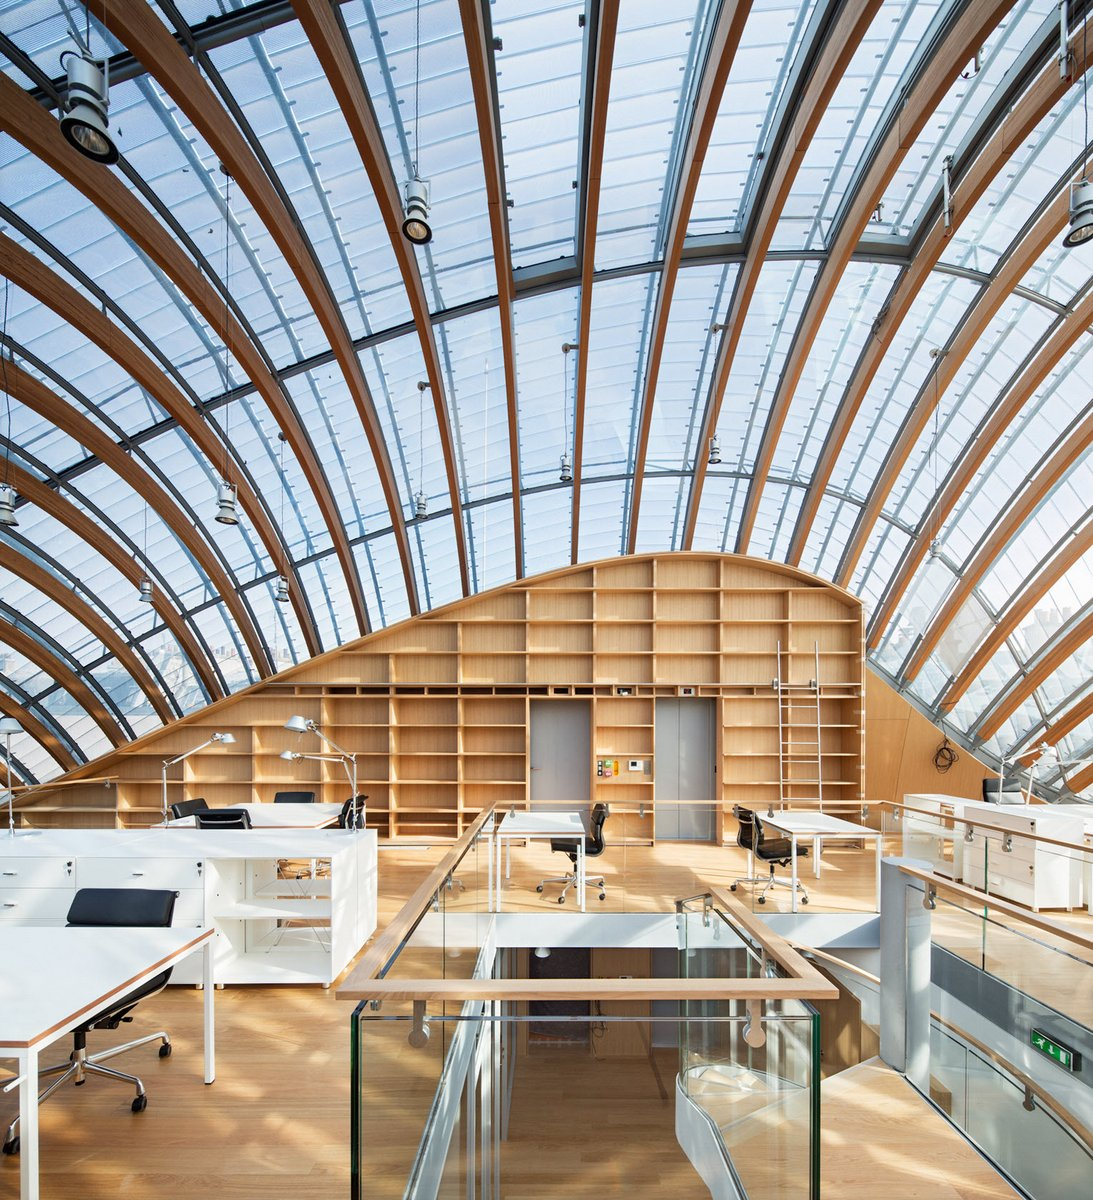 The New Pathe Foundation Headquarters by Renzo Piano Squeezed Into a City Block in Paris